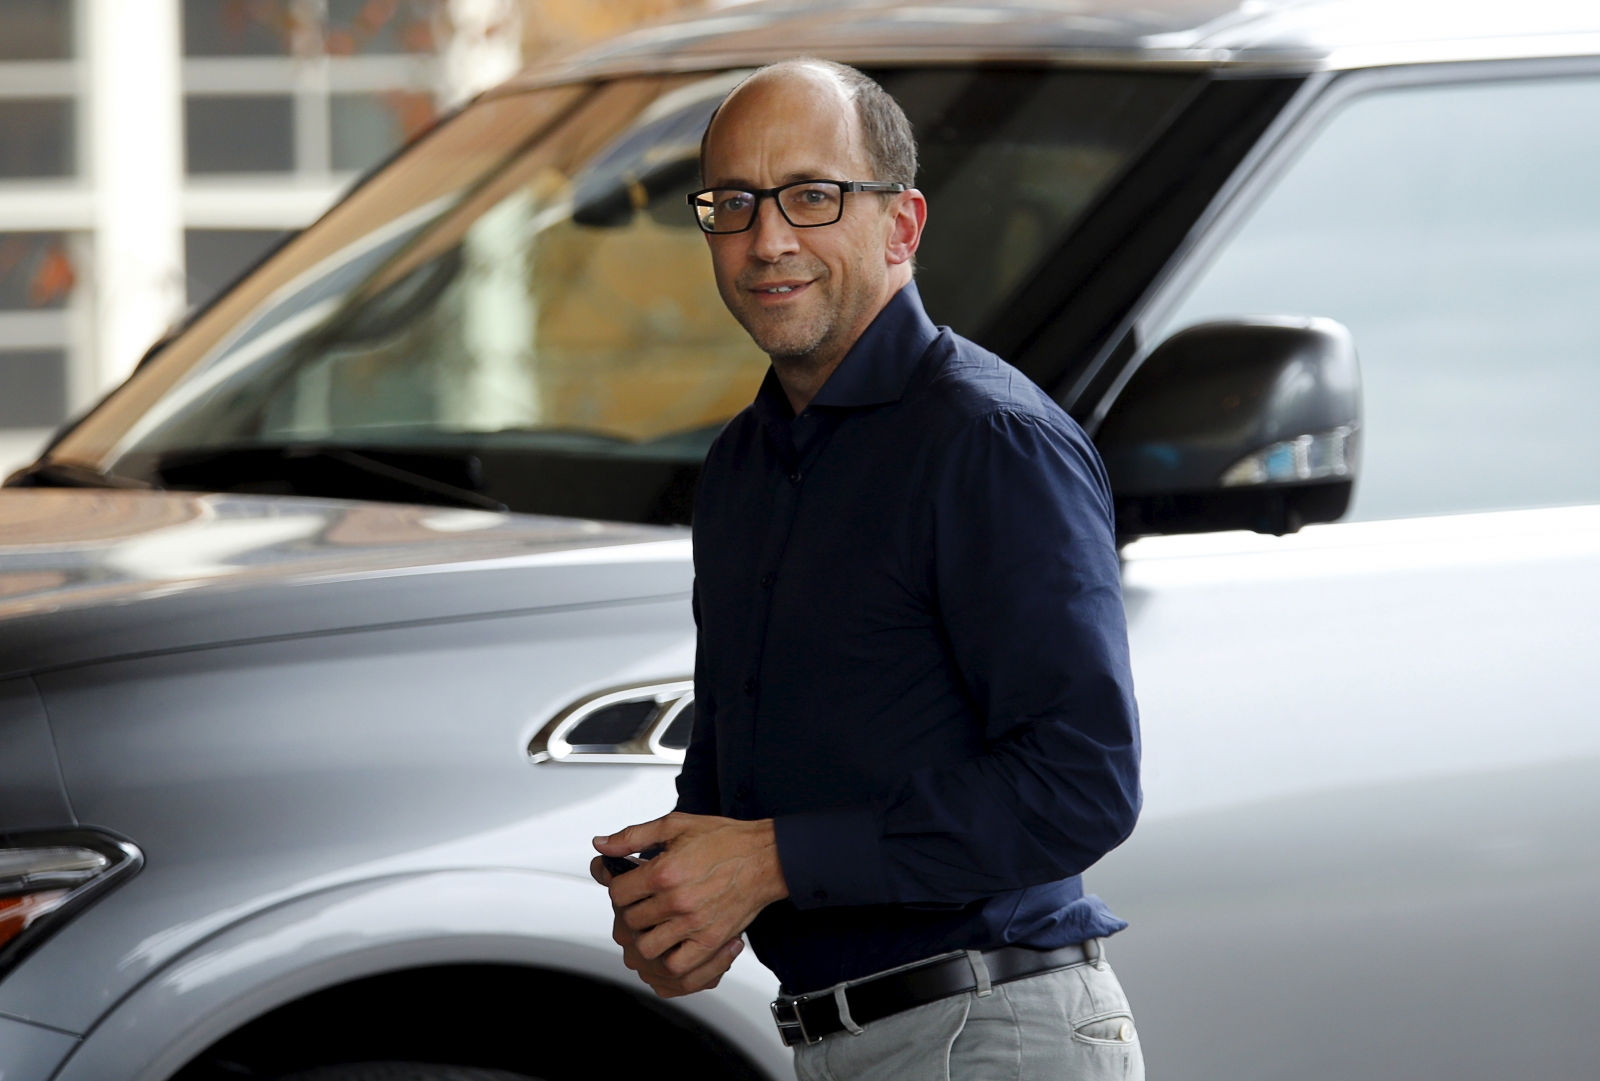 Former Twitter CEO Dick Costolo